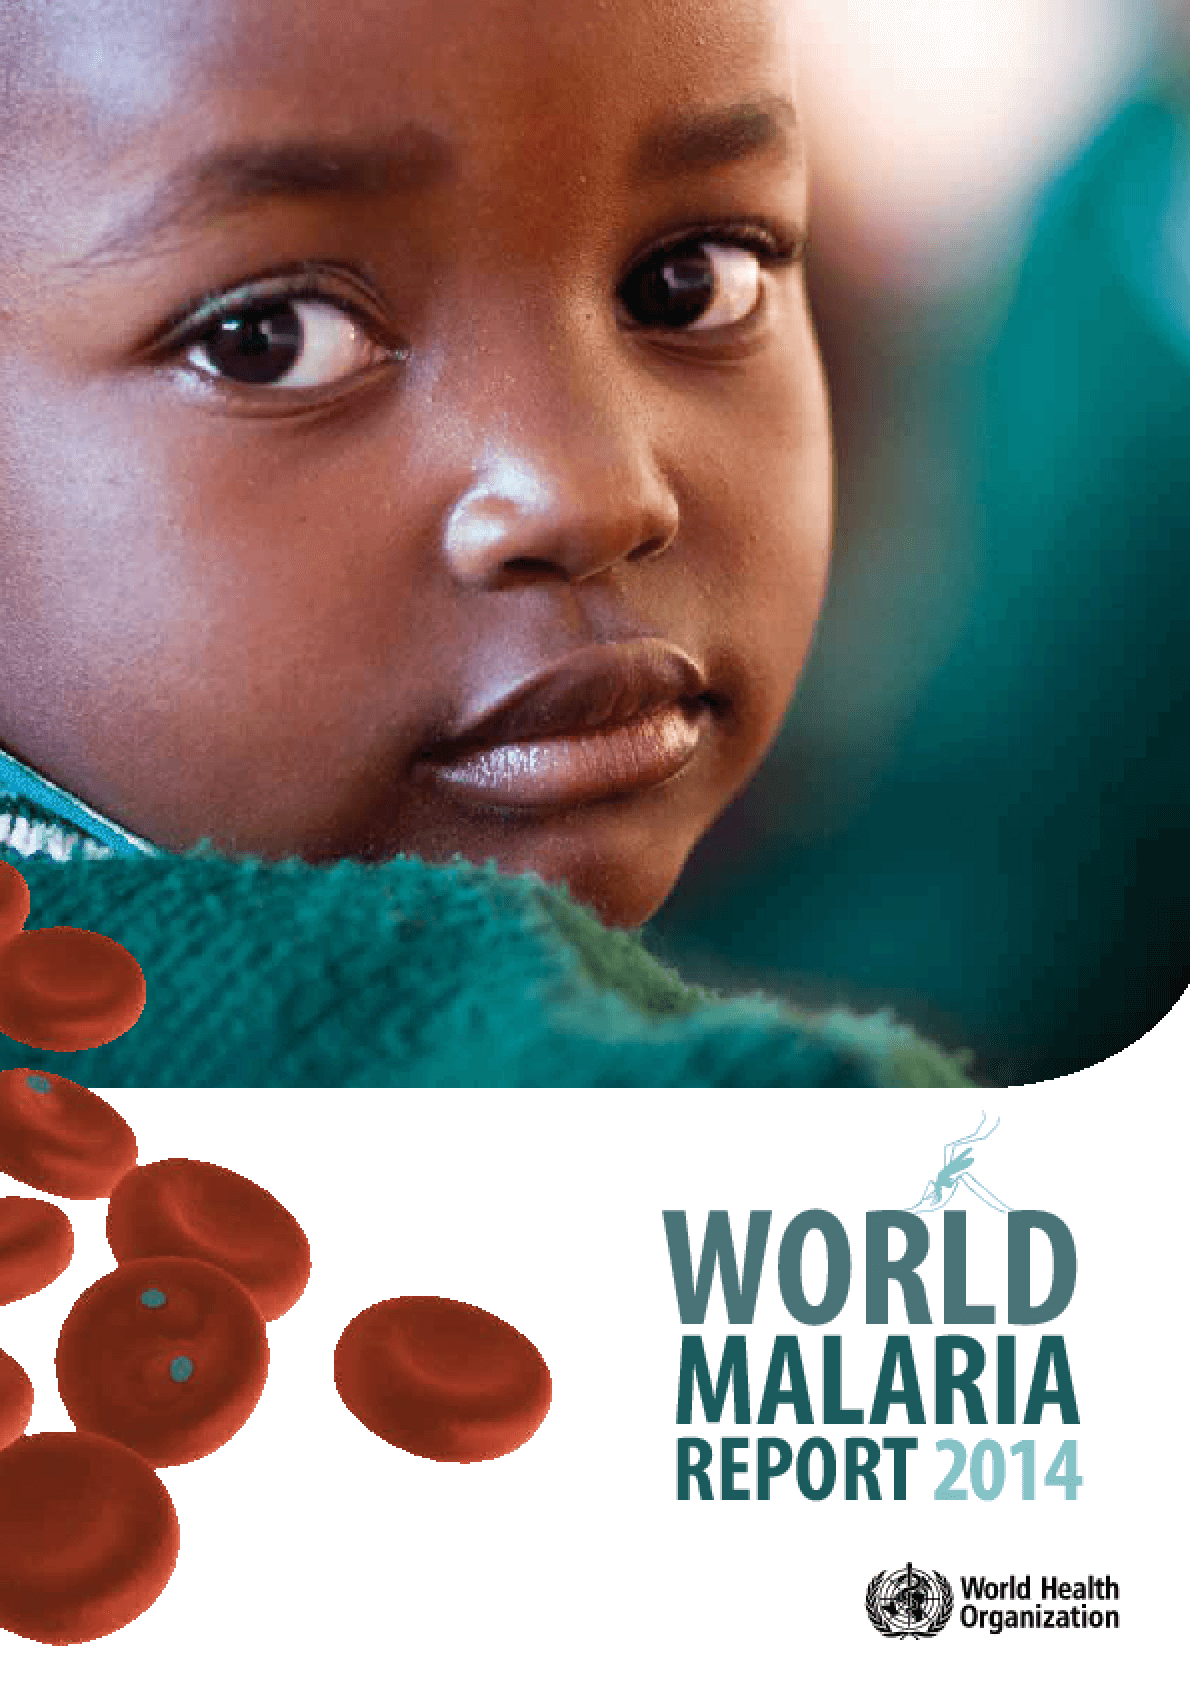 World Malaria Report 2014